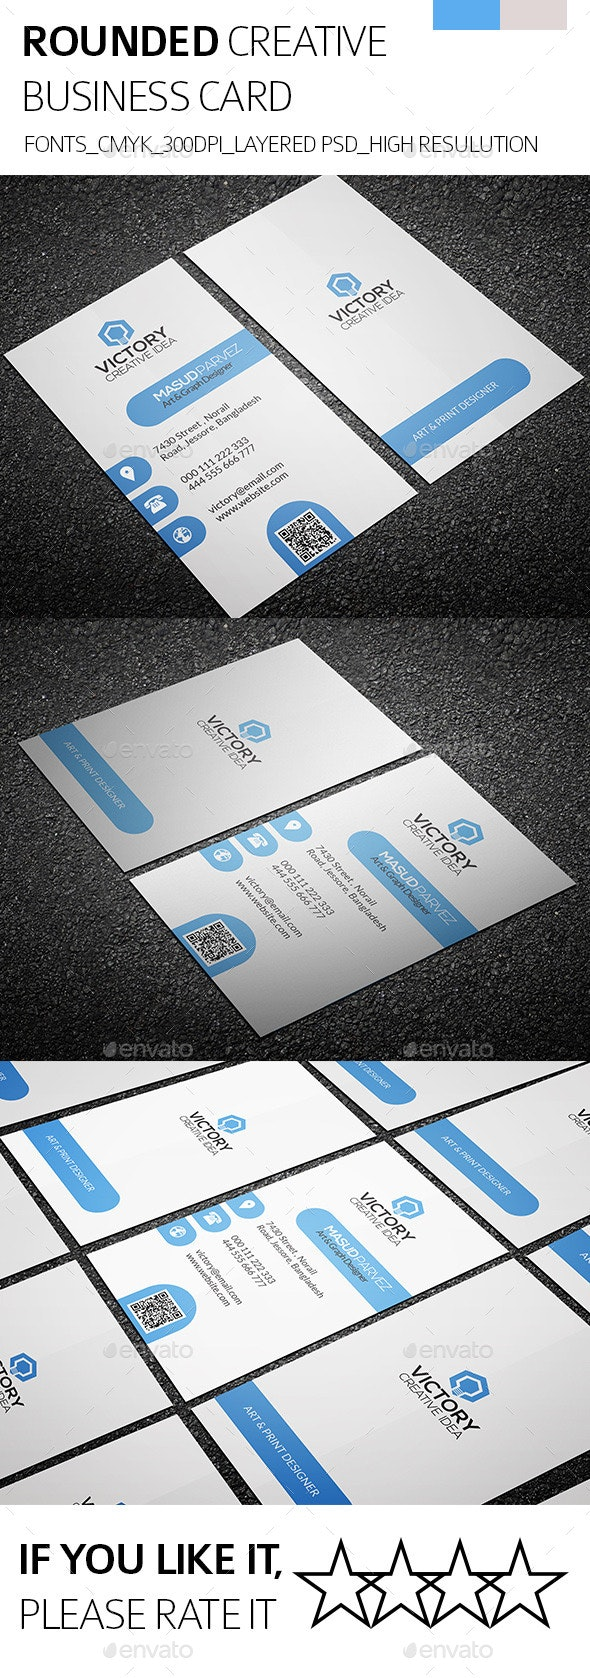 Rounded & Creative Business Card - Creative Business Cards